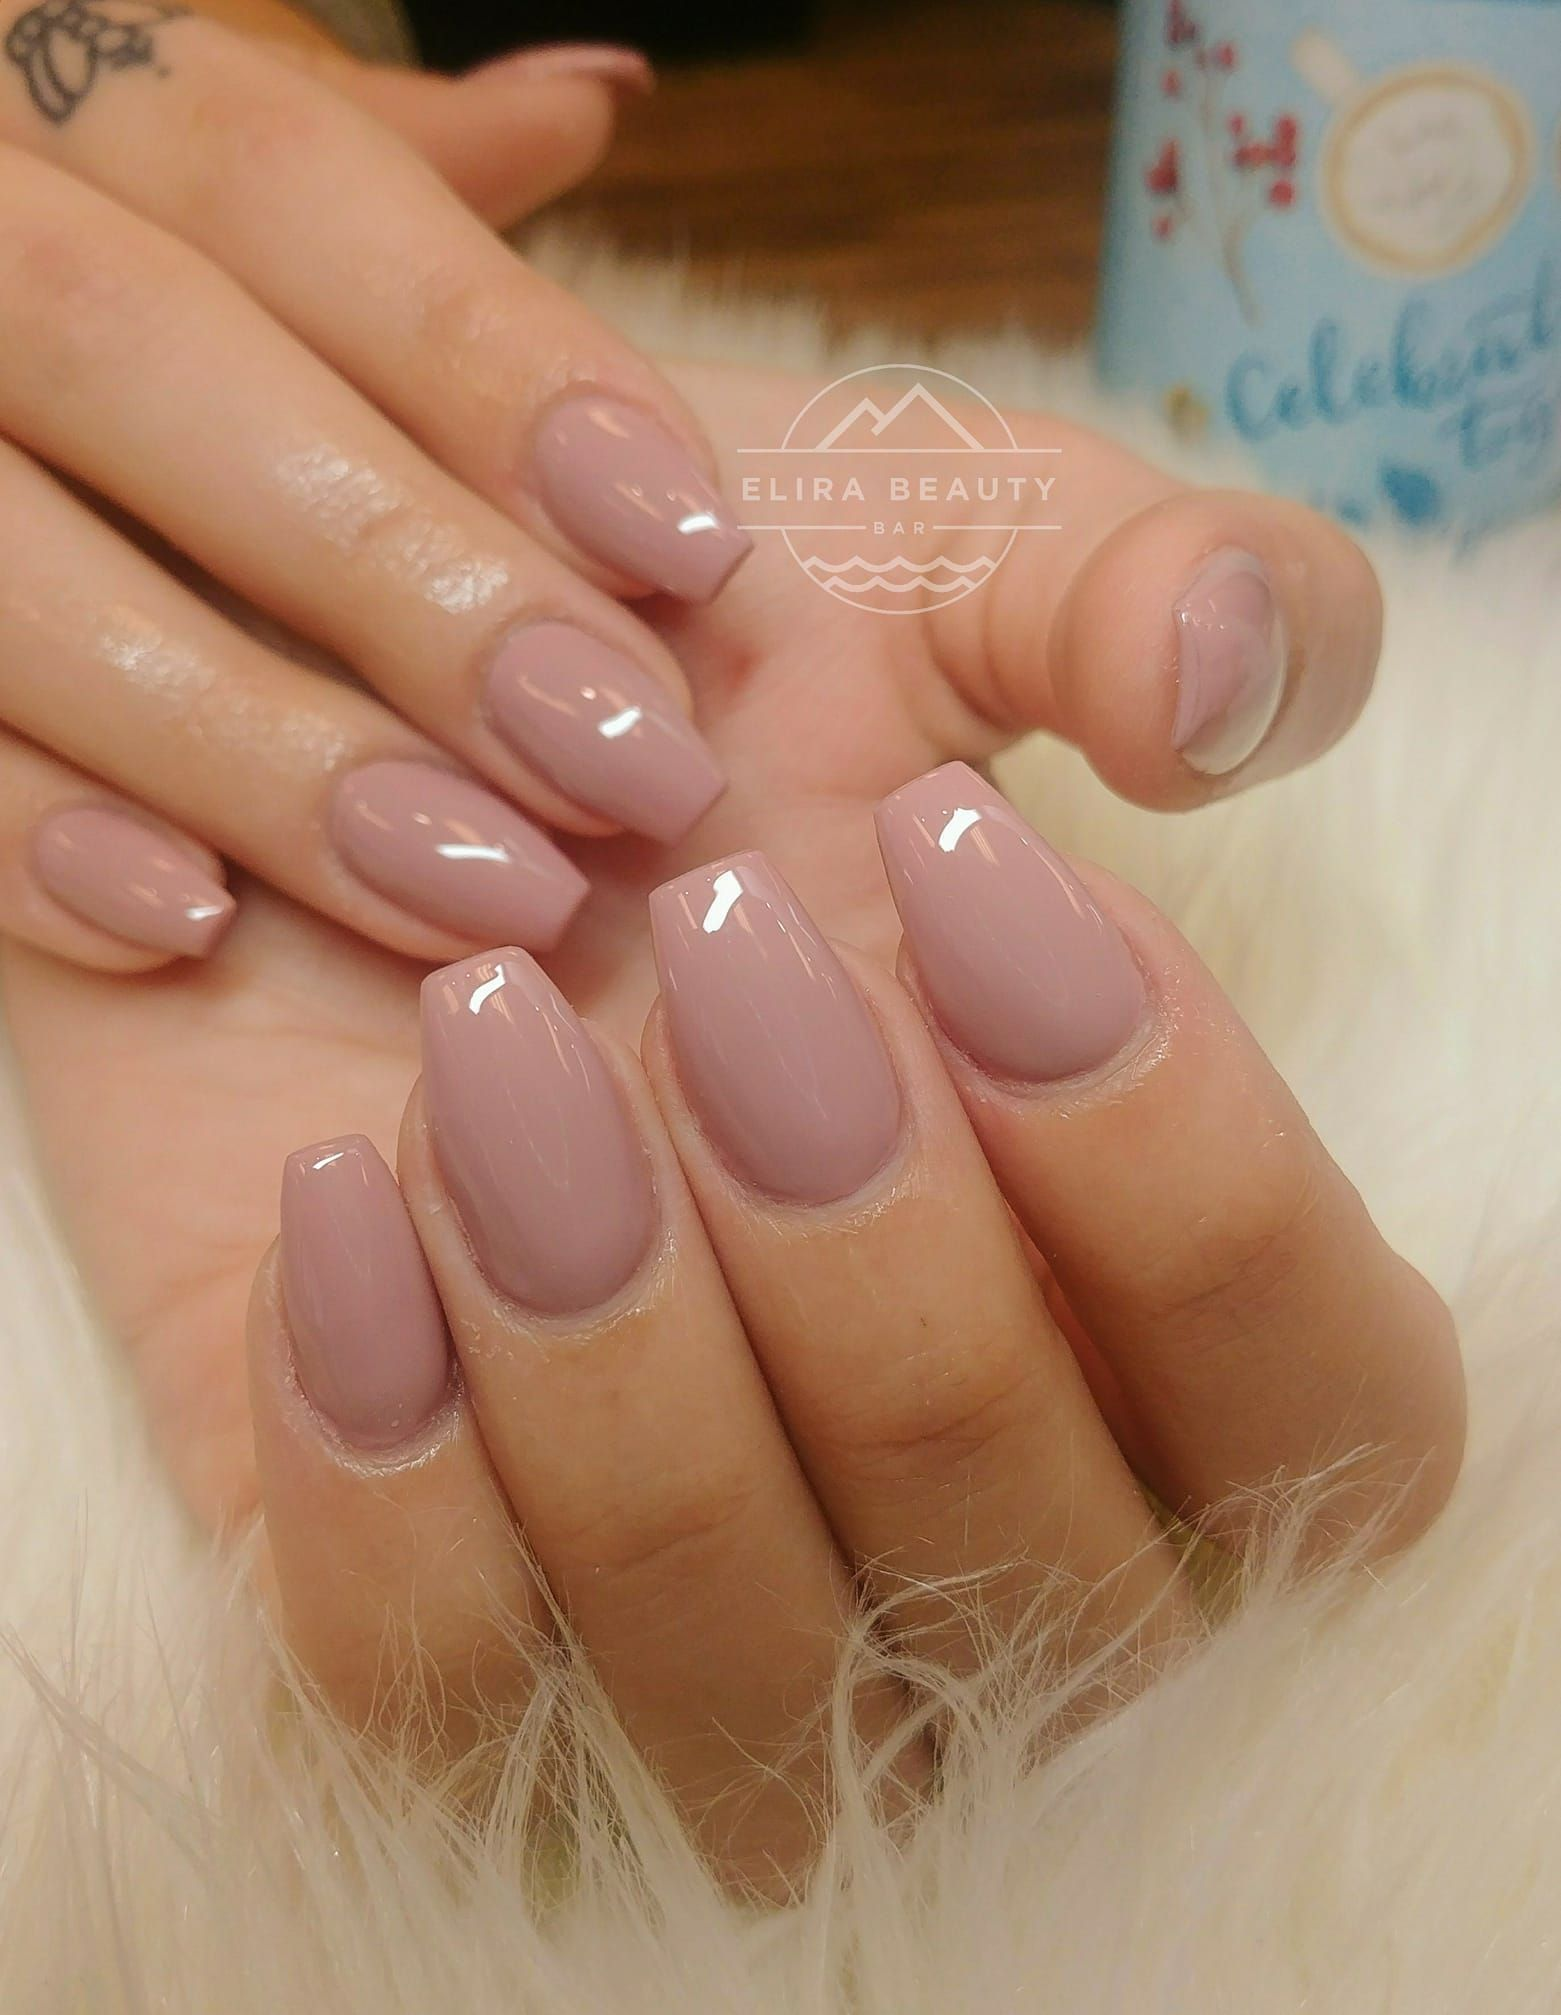 Rose Beige Nails Acrylic Nails For Young Rose Beige Nails Acrylic Nails Beige Bridalnai In 2020 Beige Nails Bridesmaids Nails Short Acrylic Nails